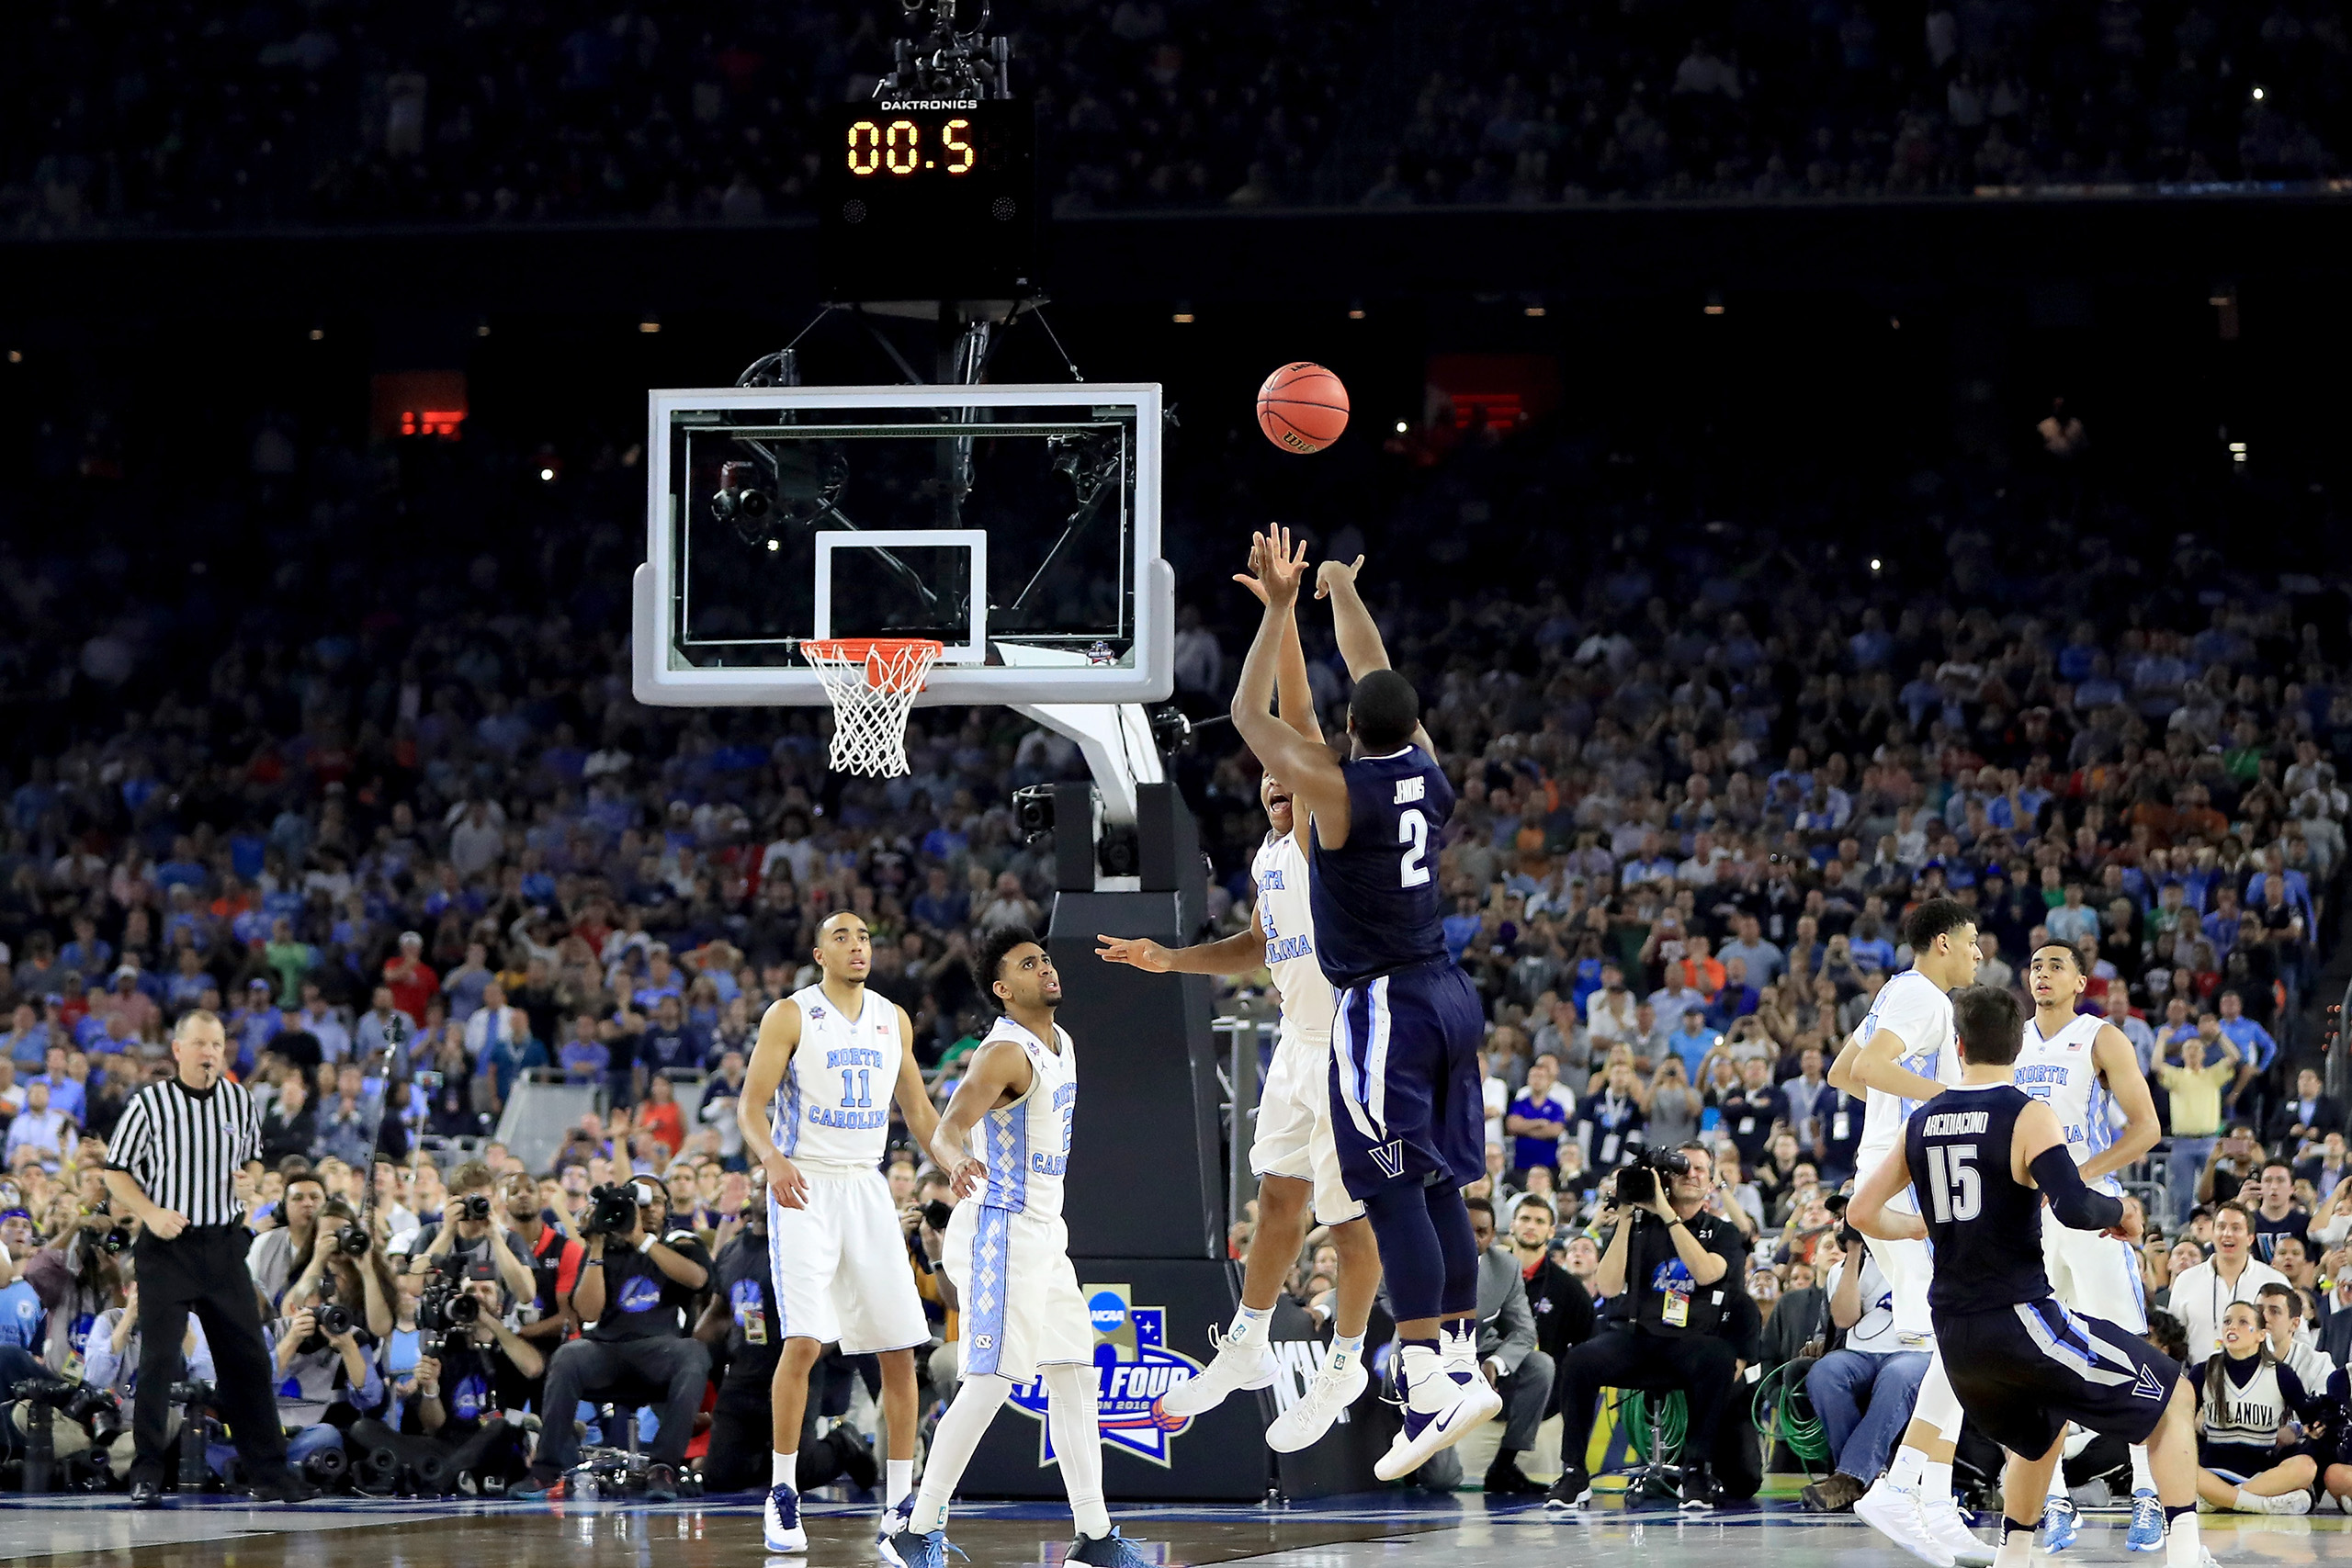 Kris Jenkins, #2 of the Villanova Wildcats, shoots the game-winning three pointer to defeat the North Carolina Tar Heels 77-74 in the 2016 NCAA Men's Final Four National Championship game at NRG Stadium in Houston, Texas, on April 4, 2016.